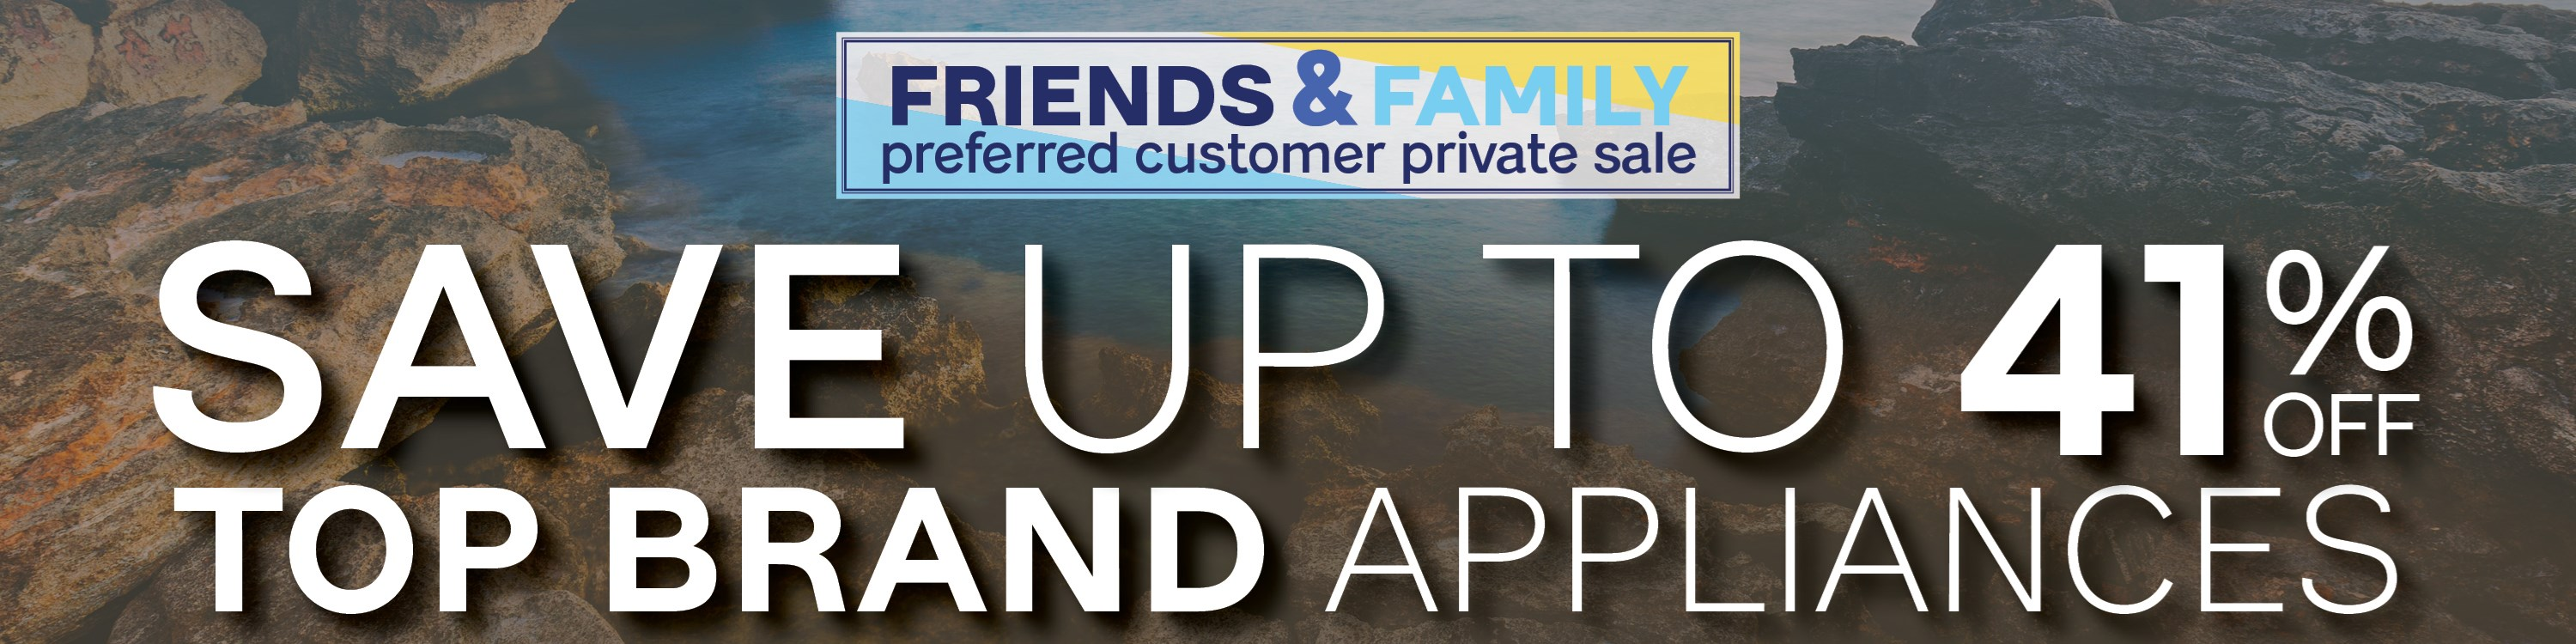 Furniture & ApplianceMart Friends & Family Sale